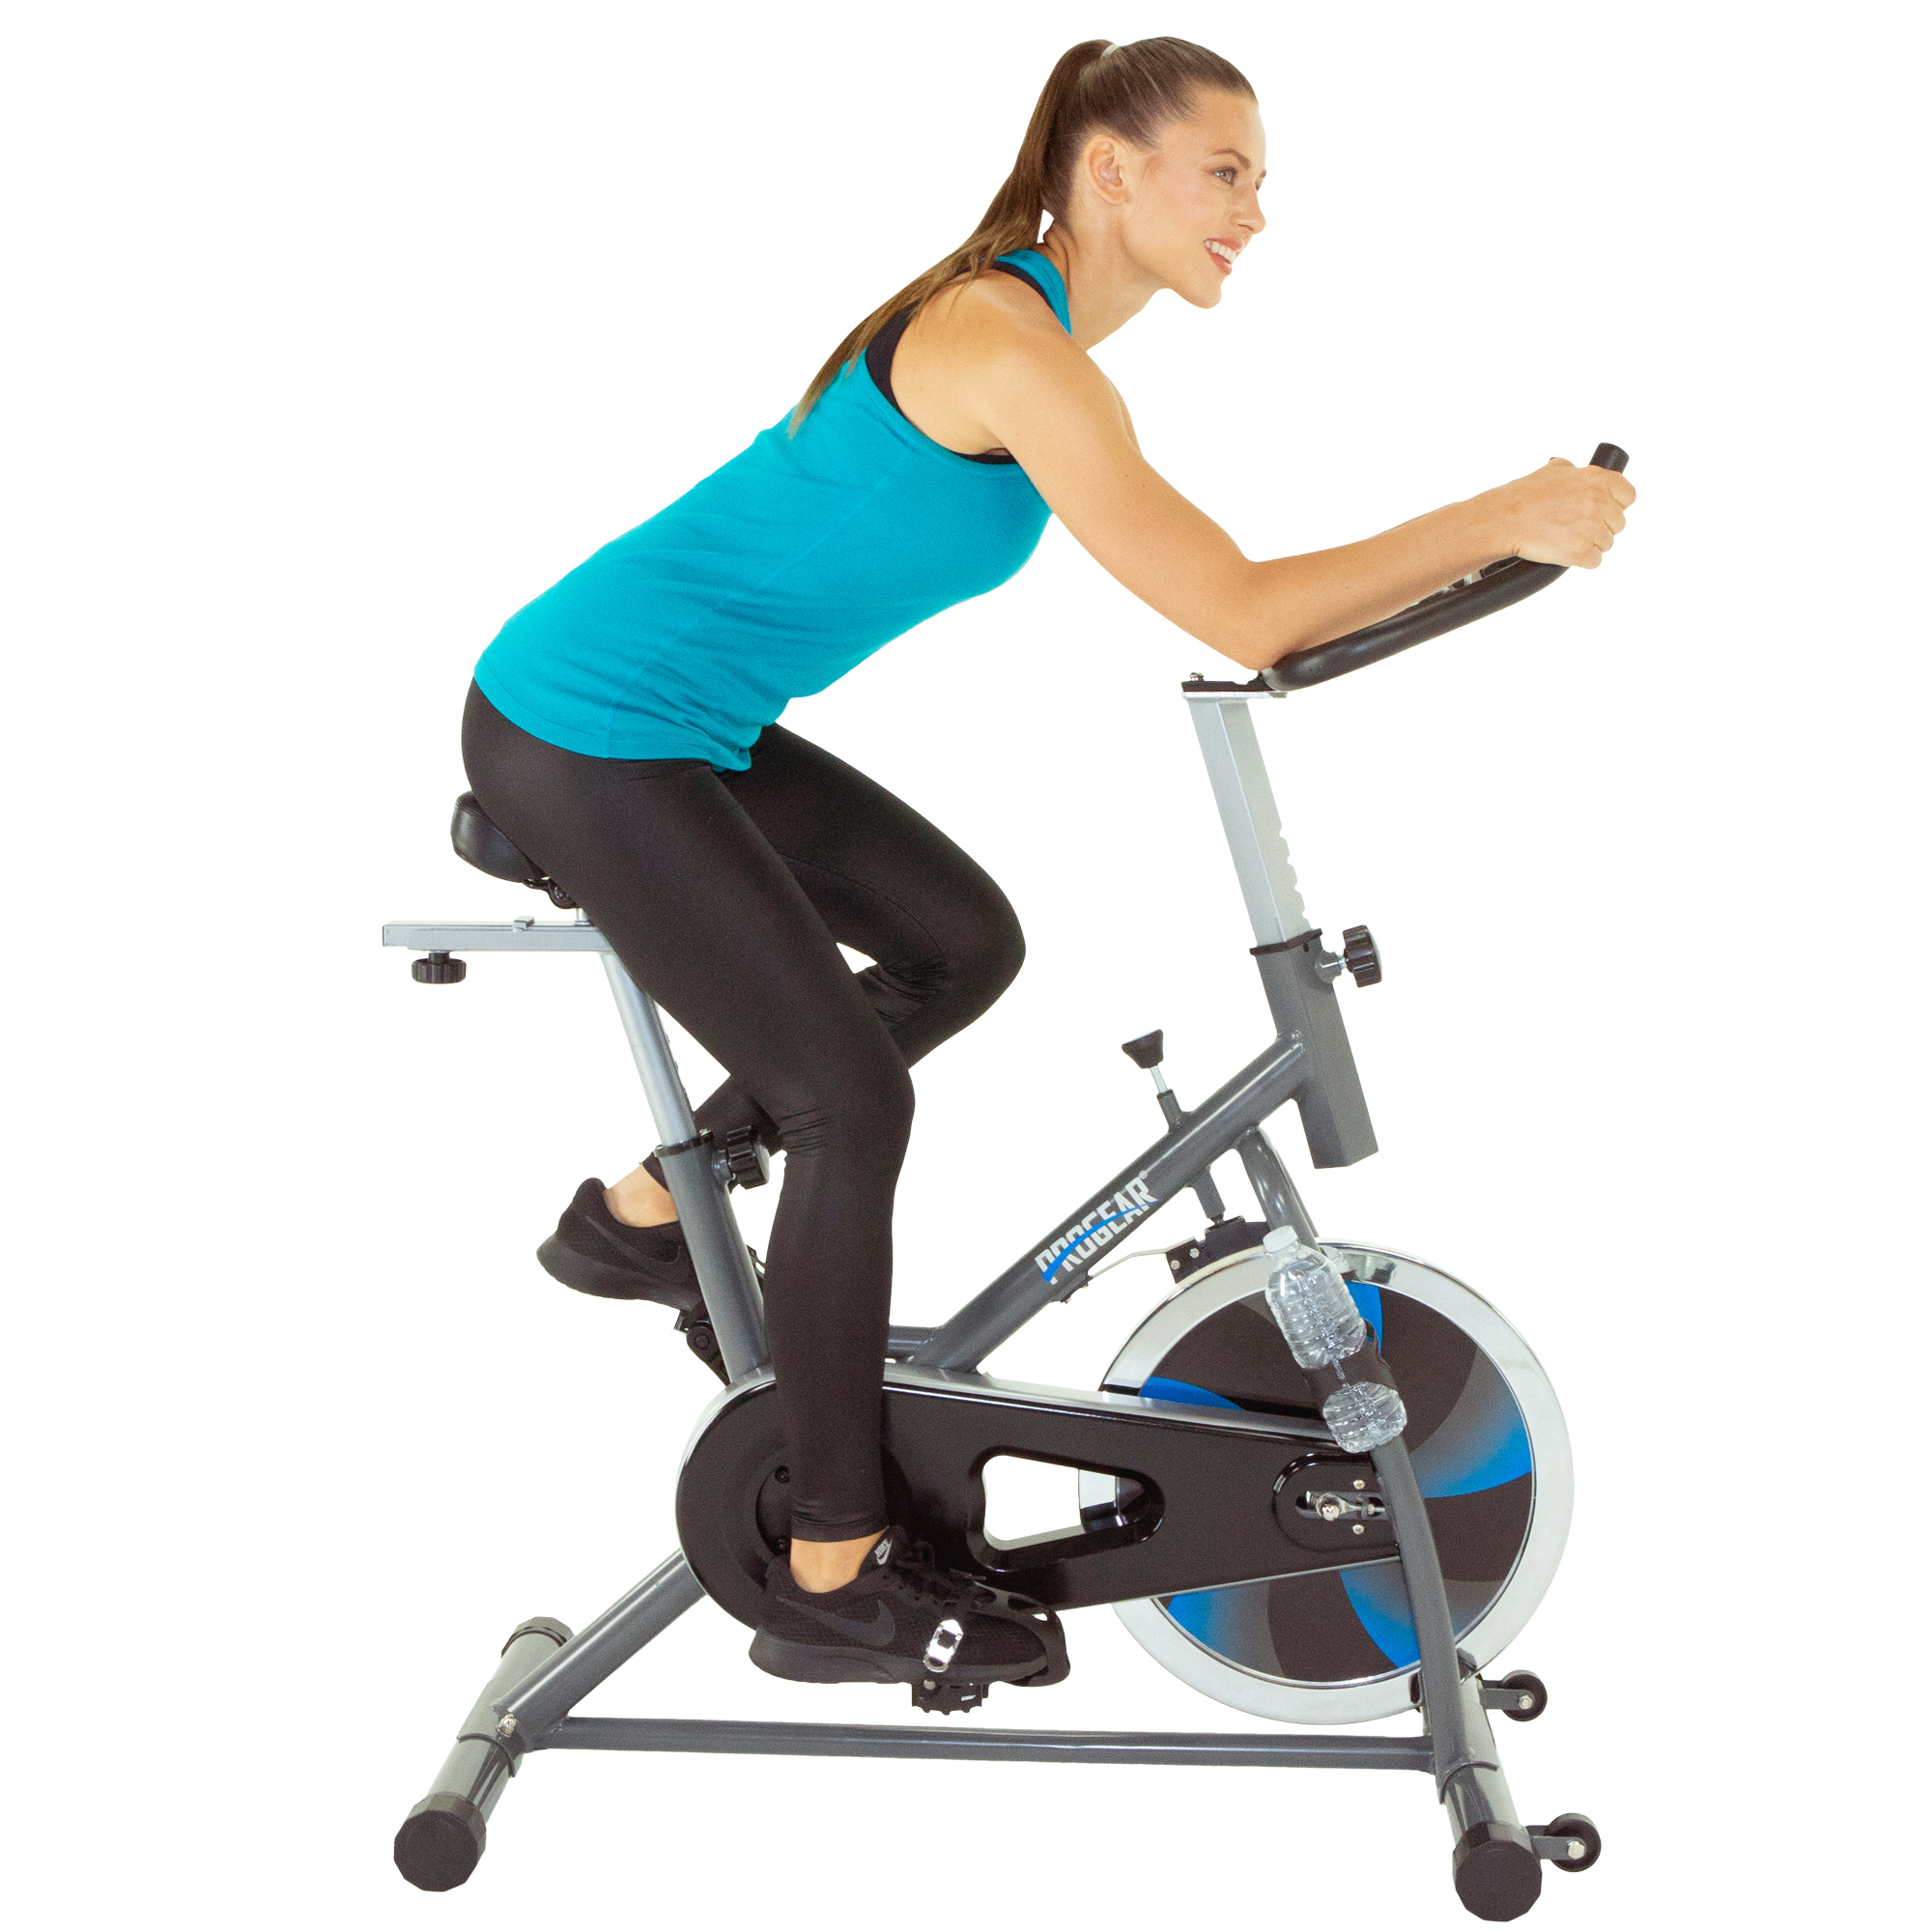 PROGEAR 300BT Exercise Bike/Indoor Training Cycle with Bluetooth Smart Technology and Free APP